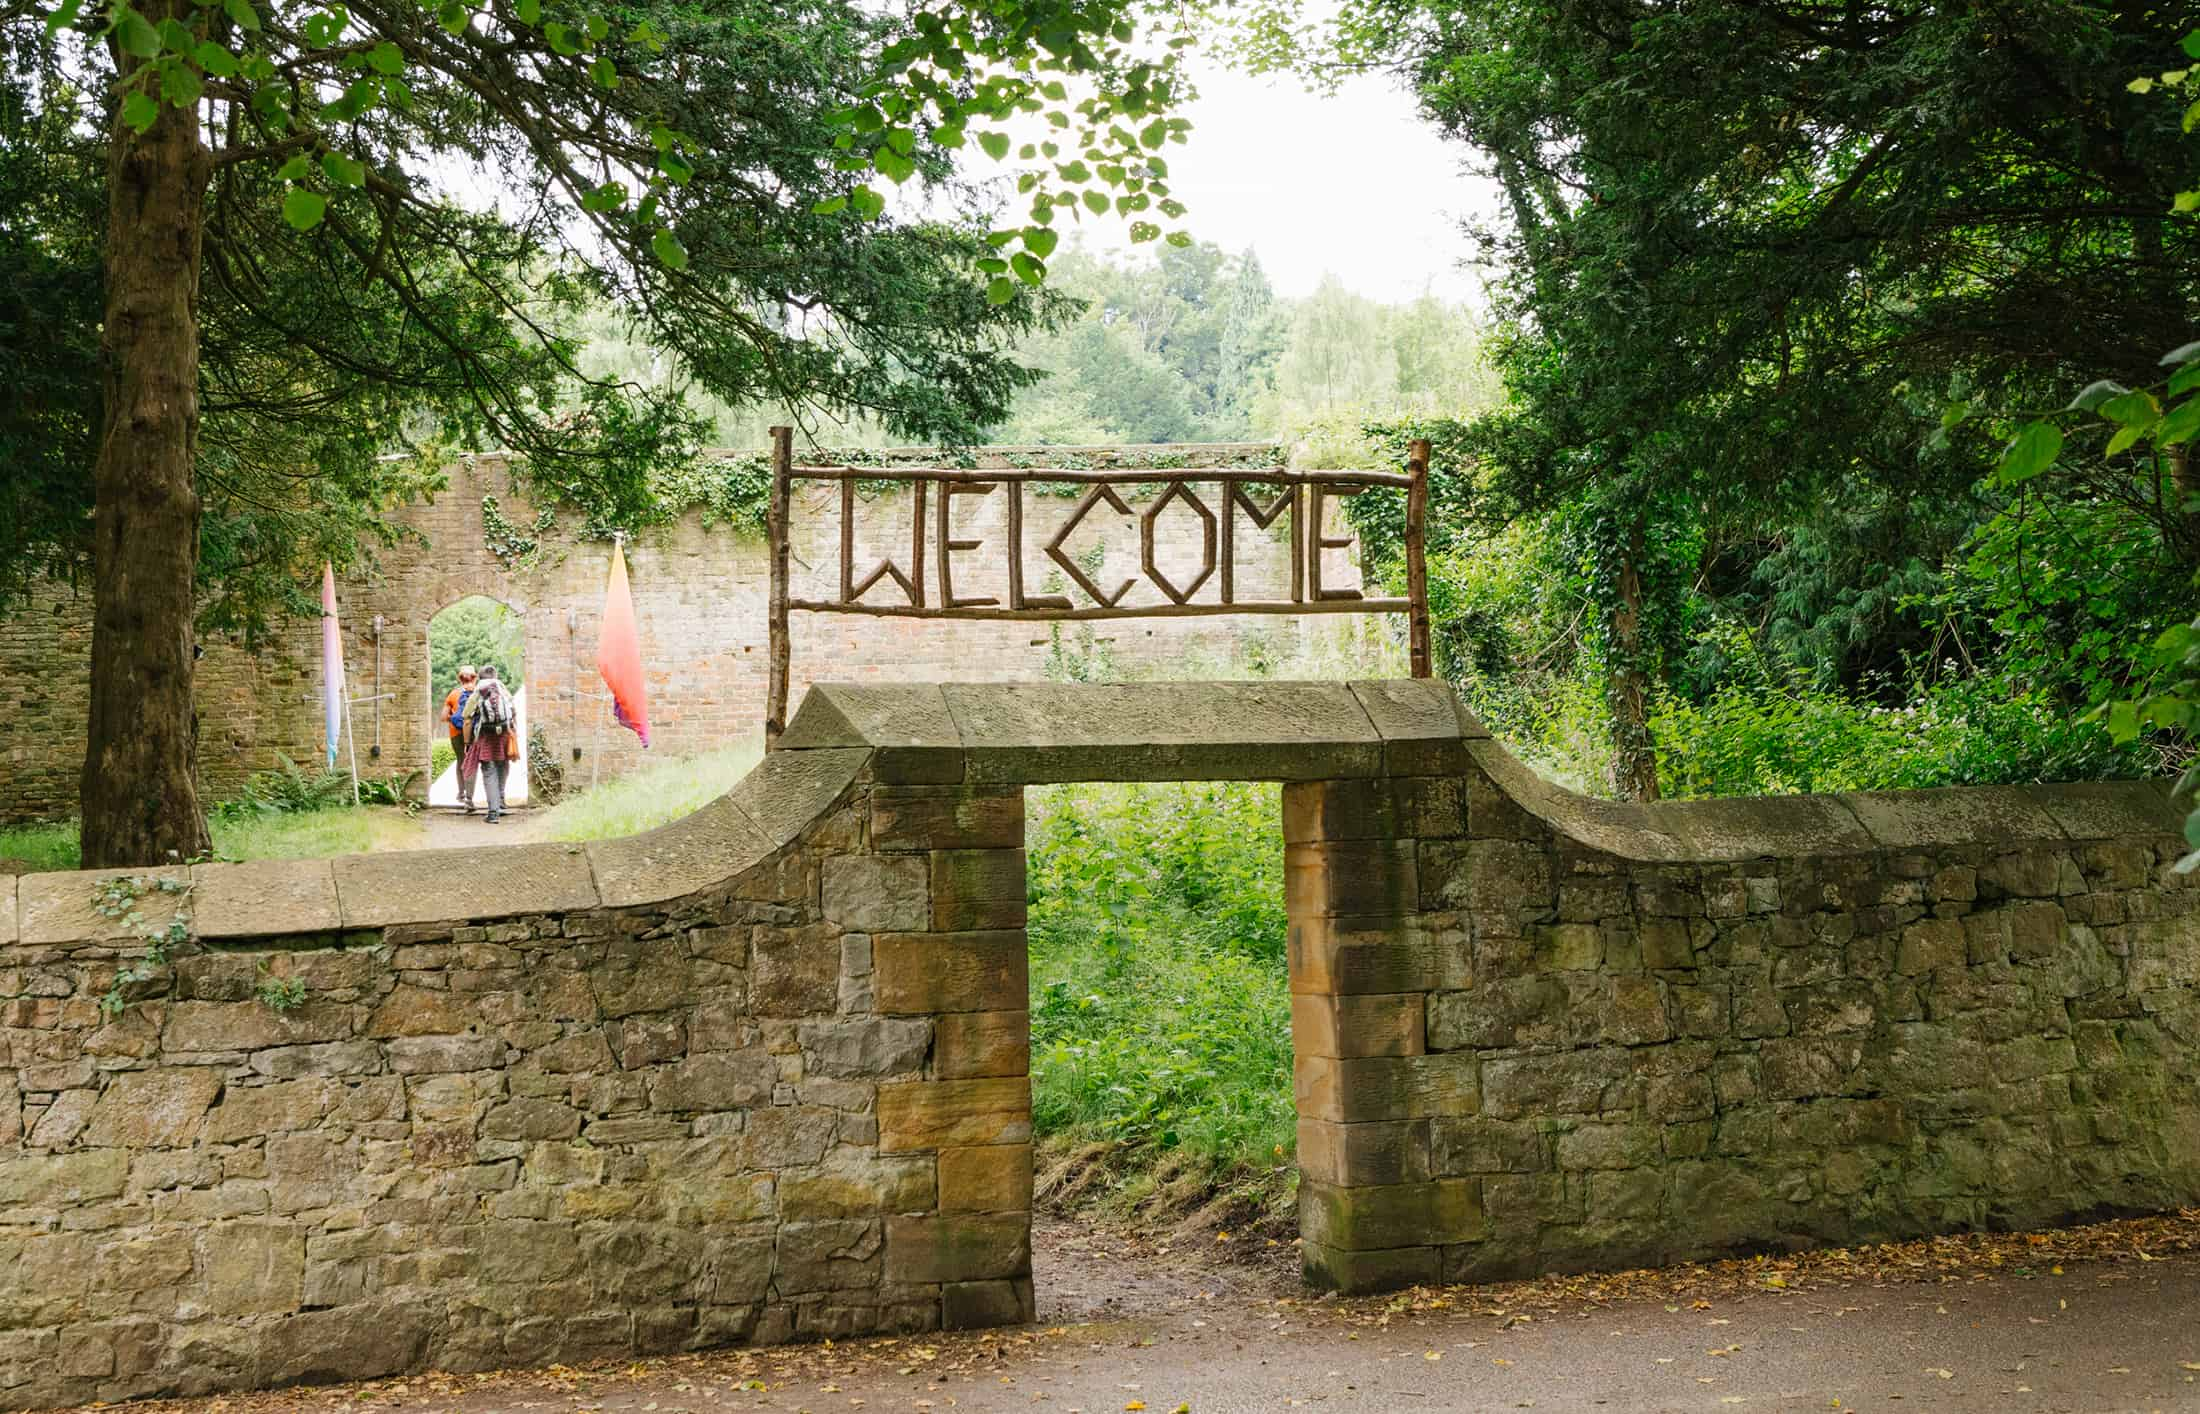 The Good Life society summer camp welcome signage americana_1